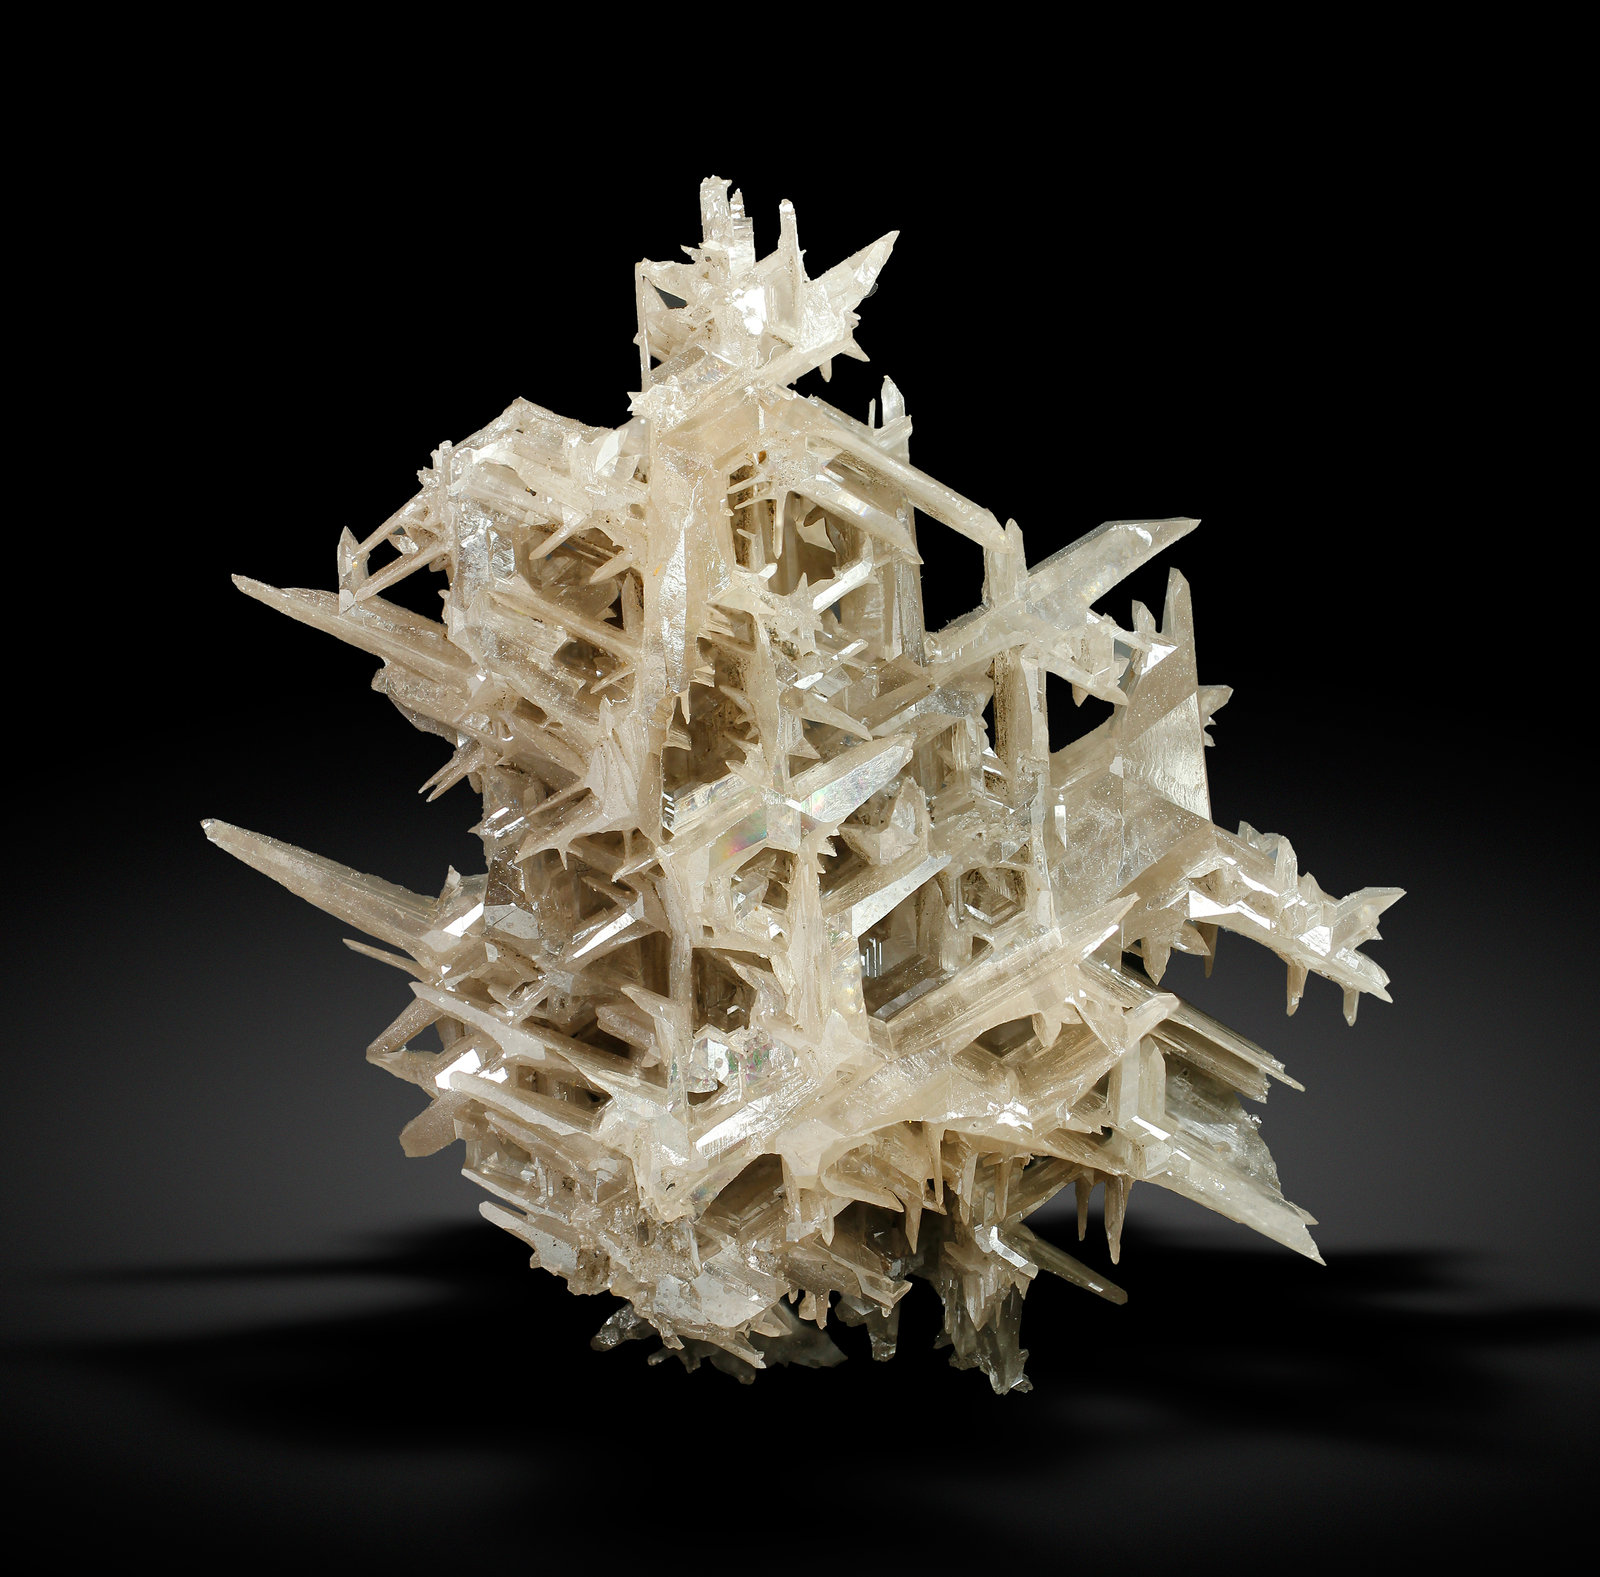 specimens/s_imagesAJ9/Cerussite-TH96AJ9_9460_f.jpg